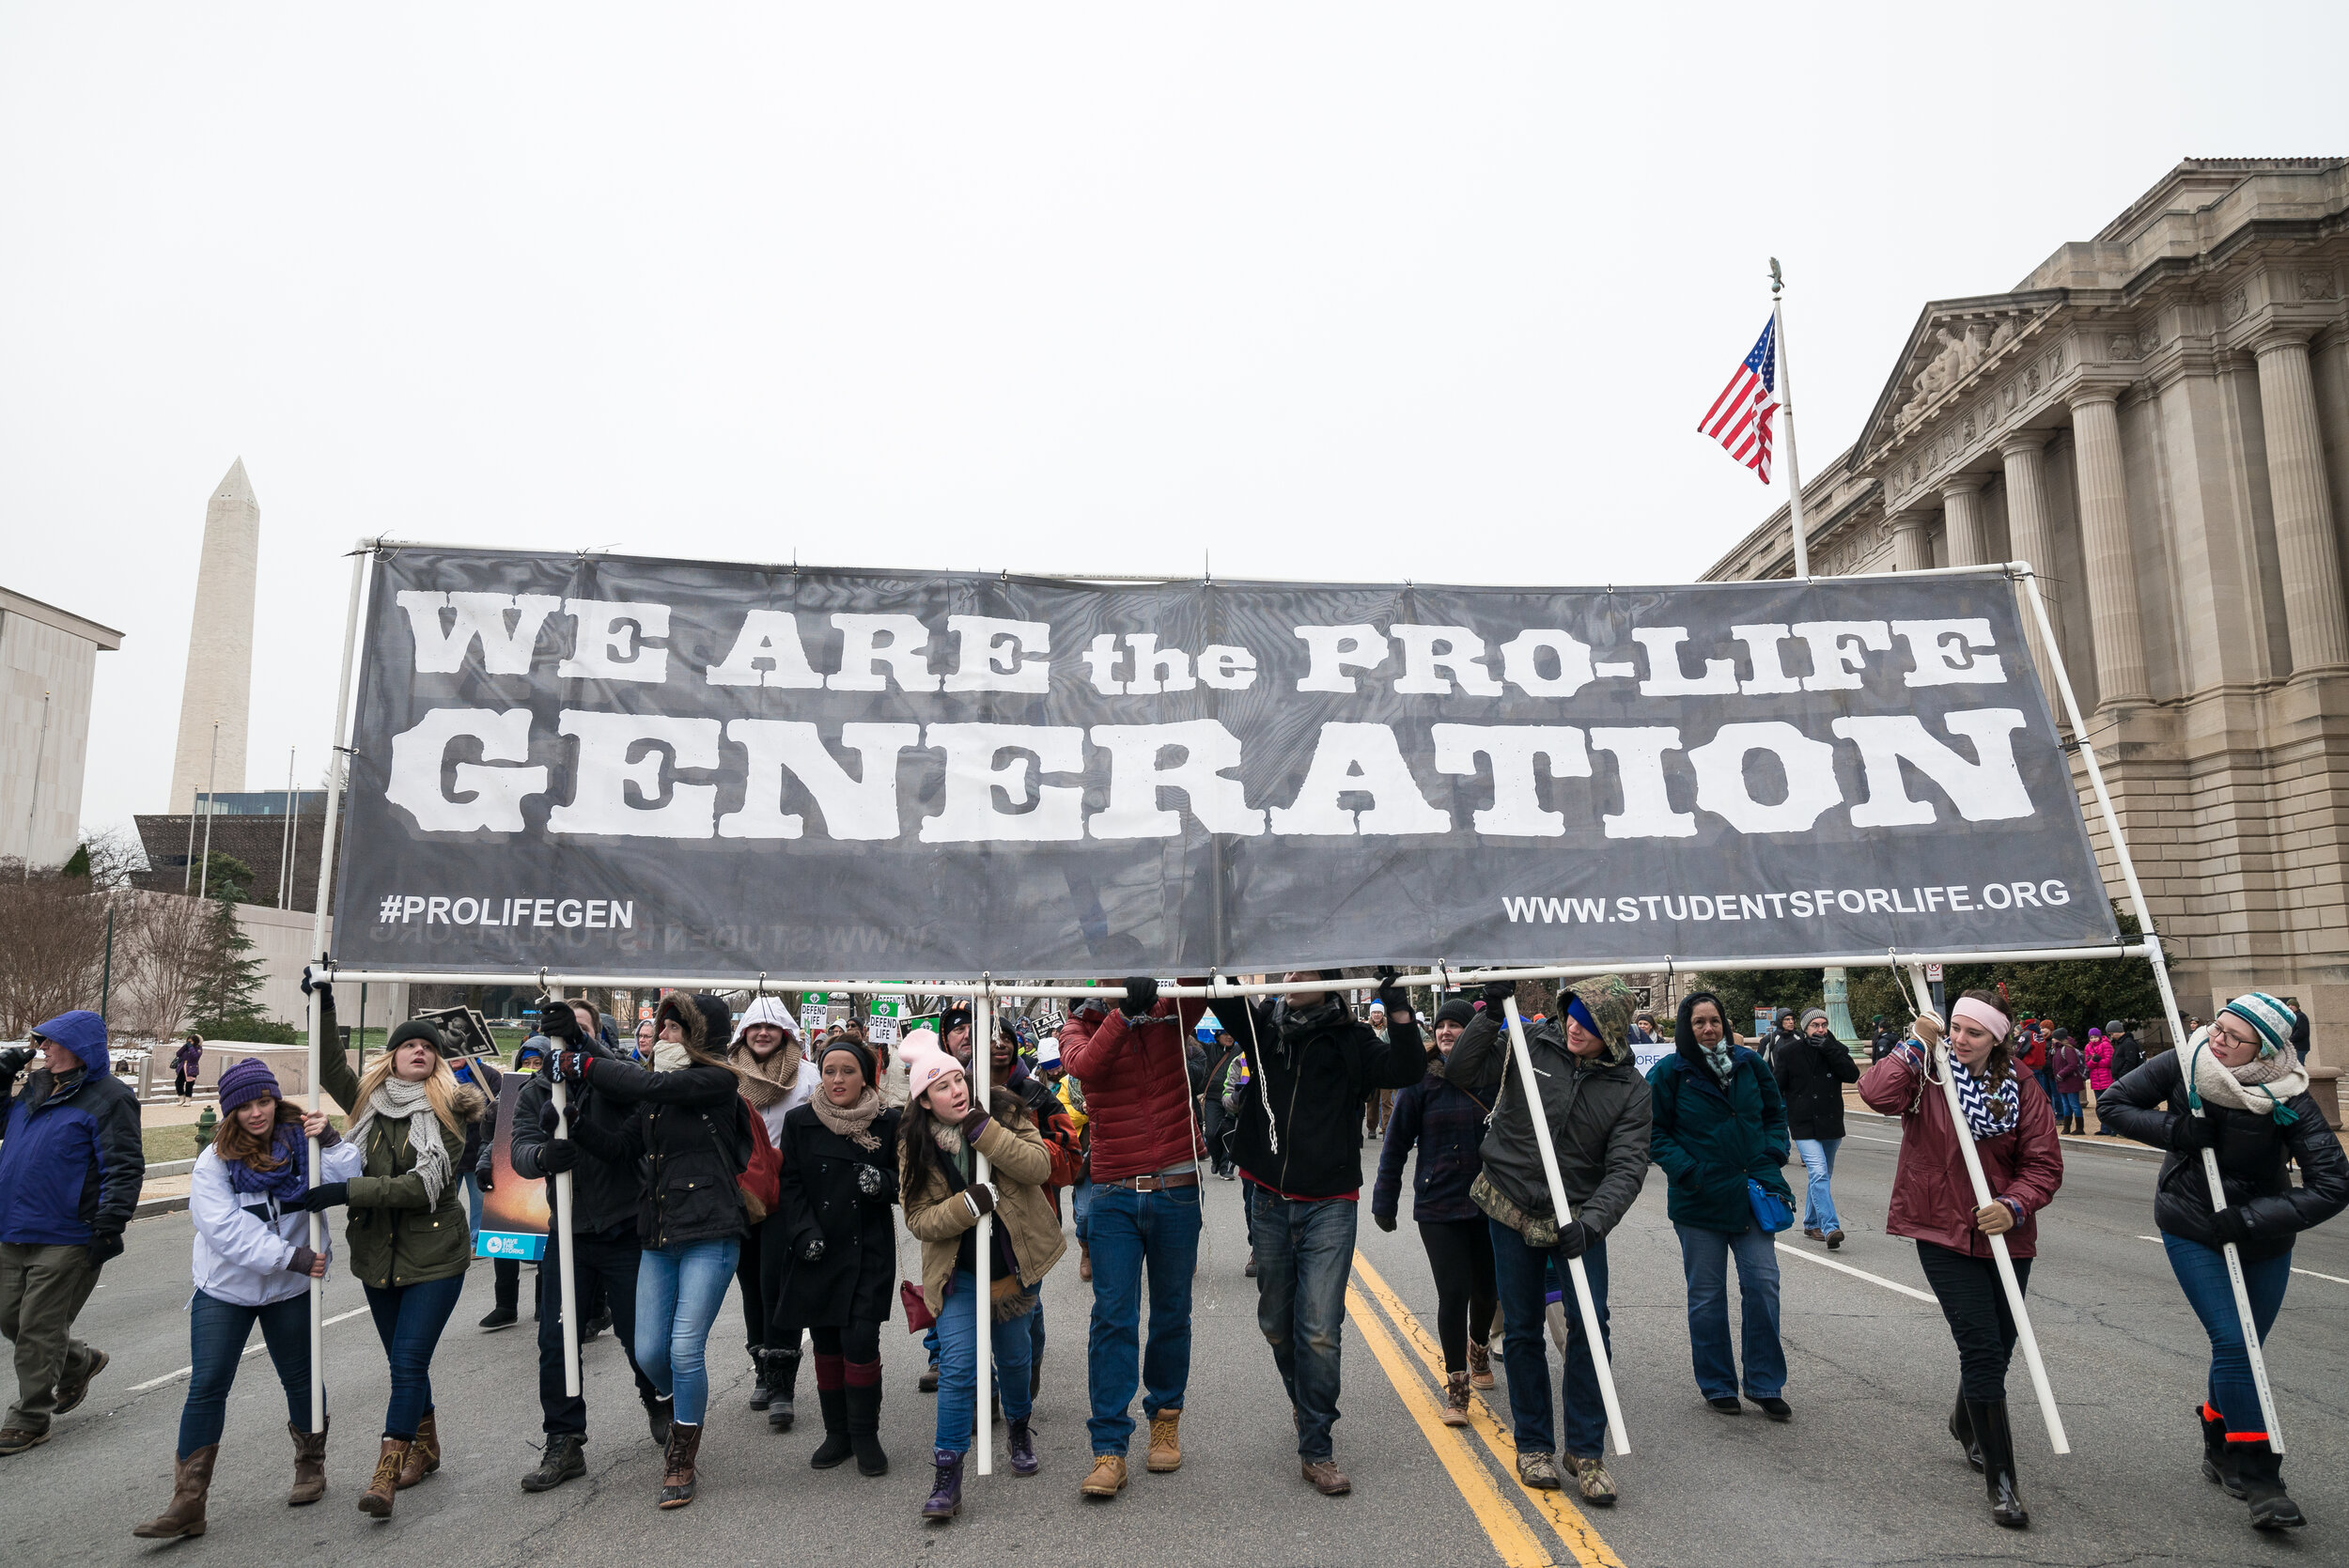 Join the Diocese of Tulsa & Eastern Oklahoma and thousands of other young adults marching in Washington, DC for the Pro-Life movement!